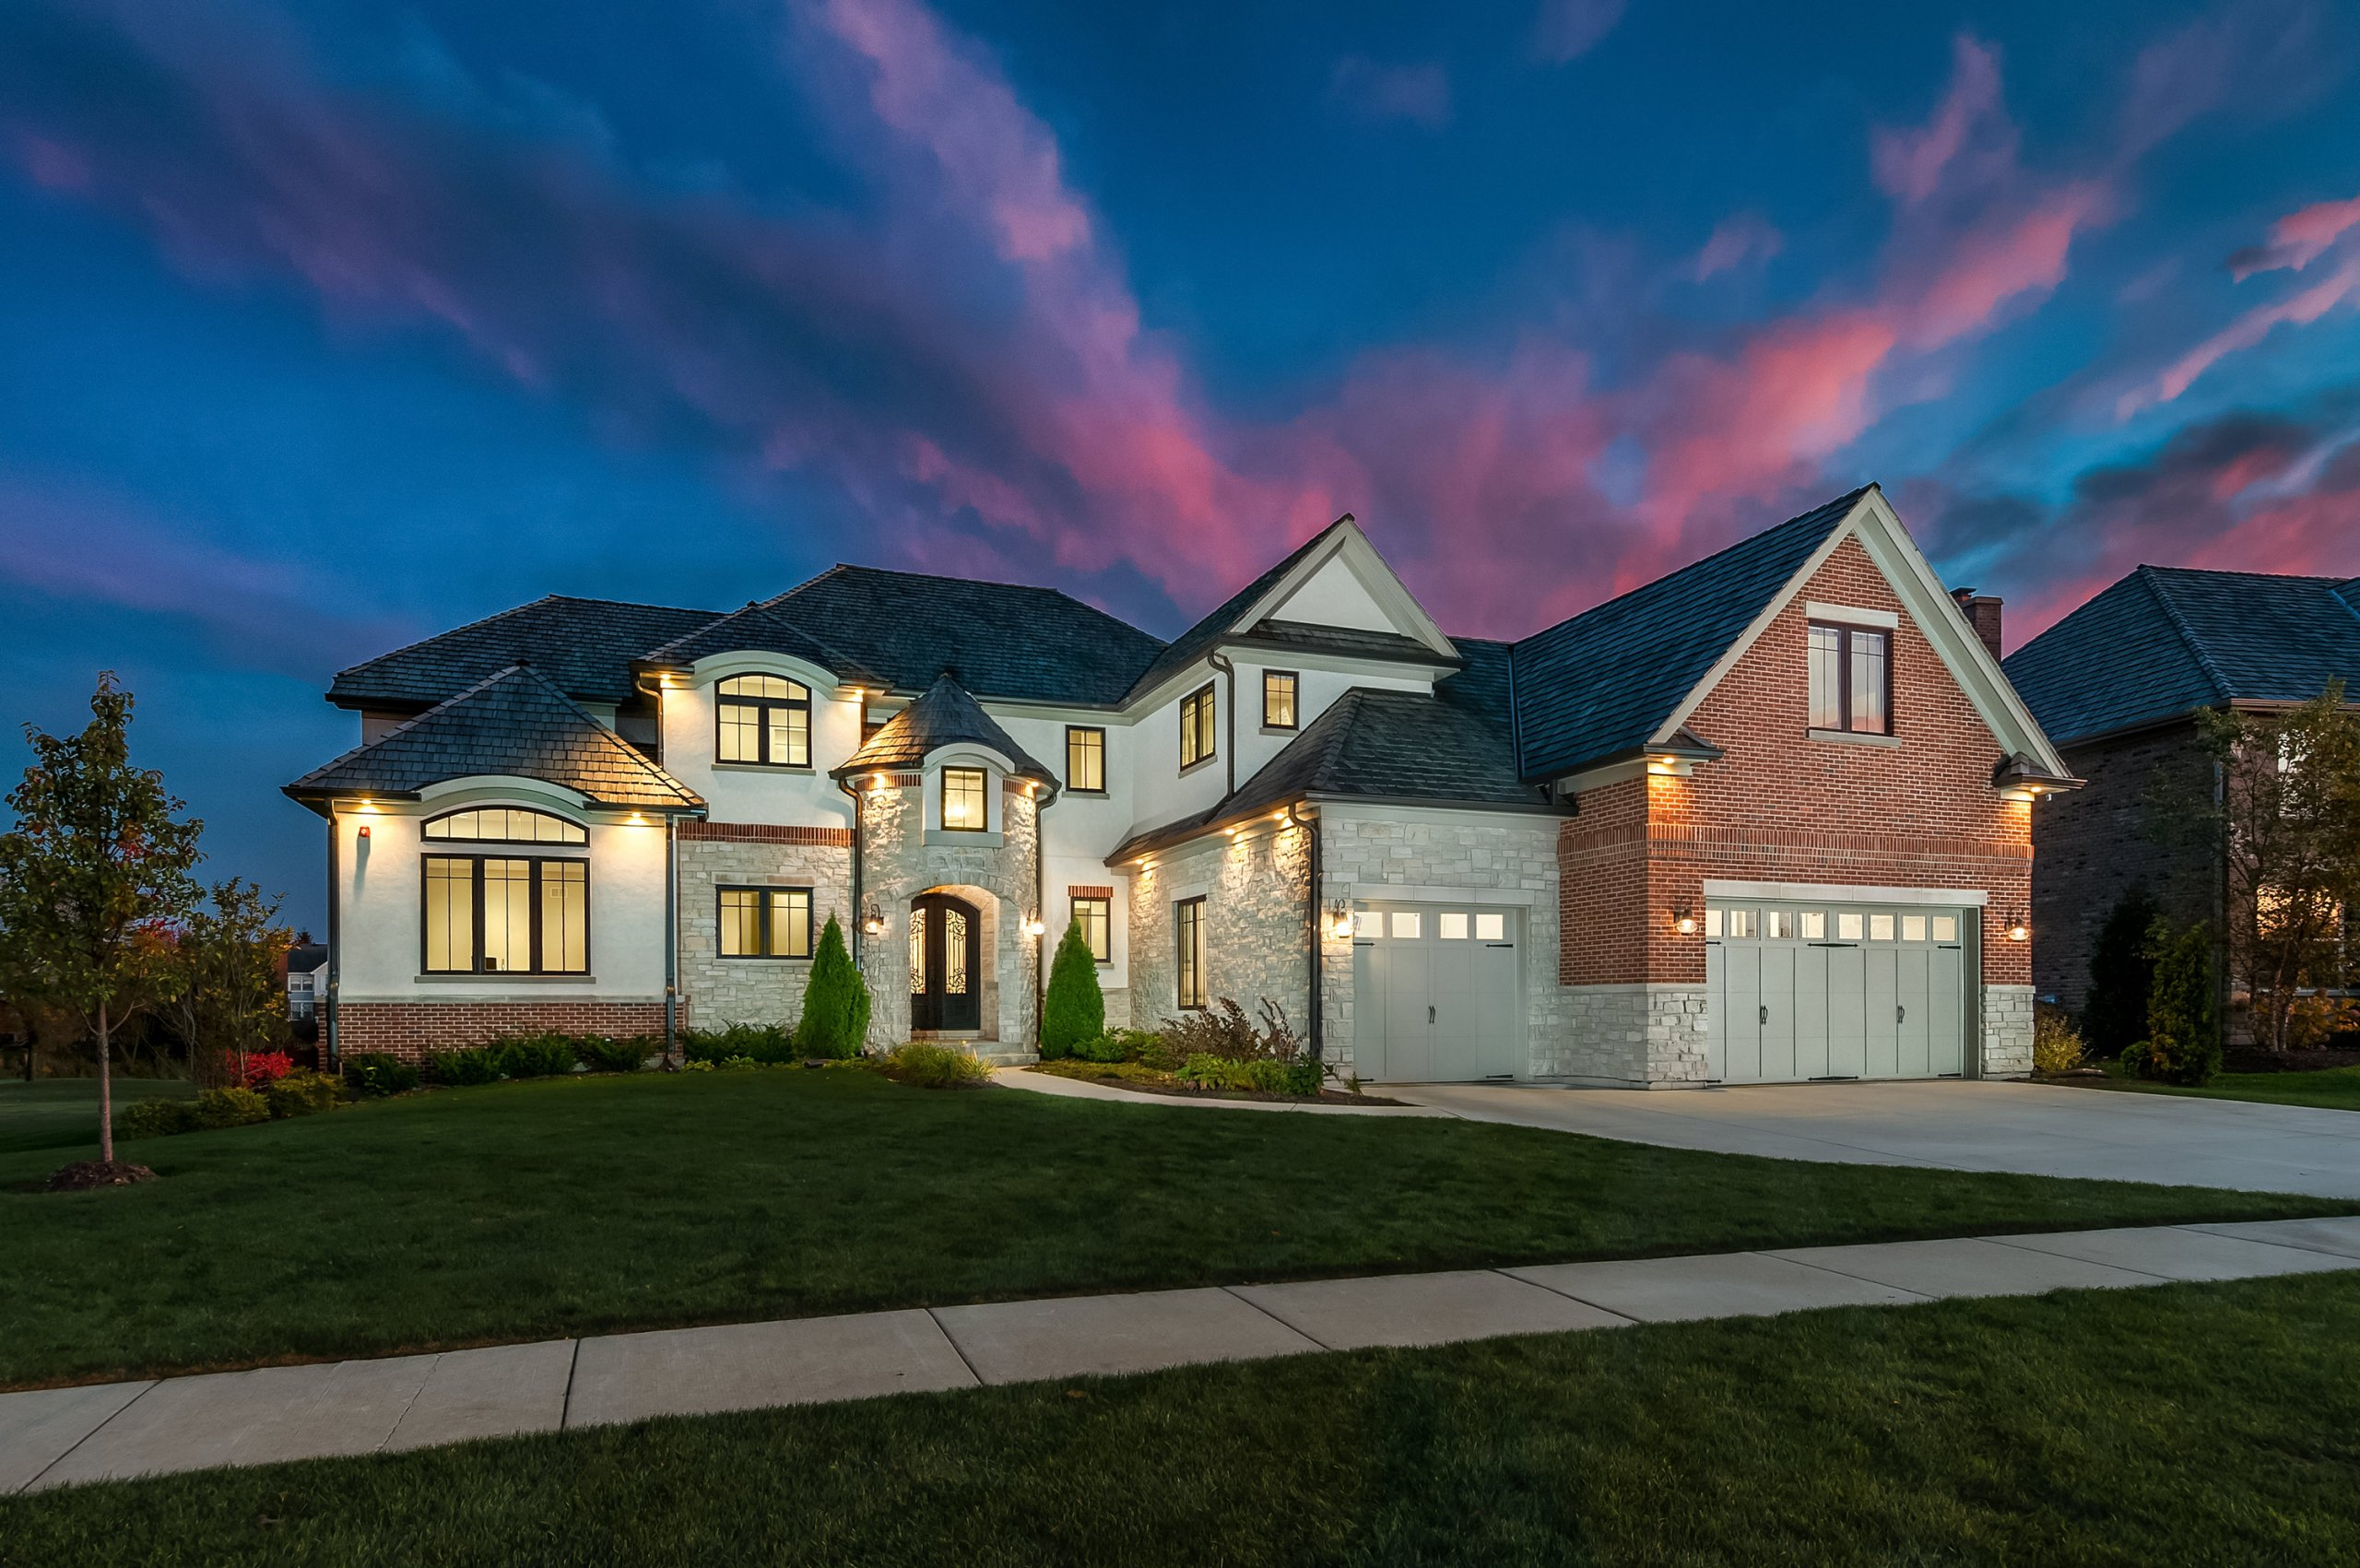 Twilight shot of 1616 Lake Charles Dr., Vernon Hills, Illinois